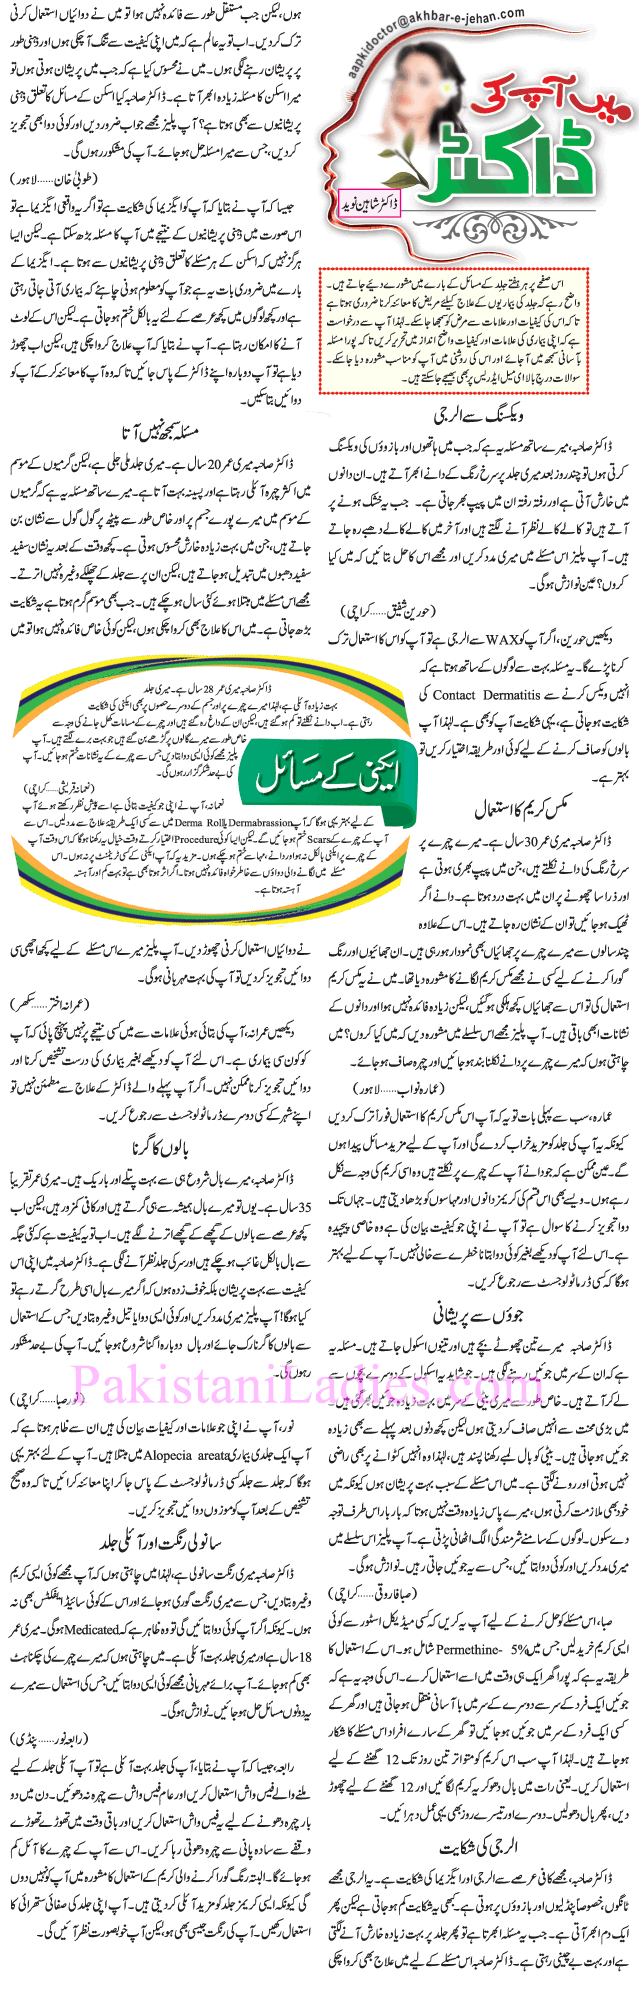 Oily Skin Acne Urdu Tips Totkay By Akhbar E Jehan November 2014 Mix Cream Scars